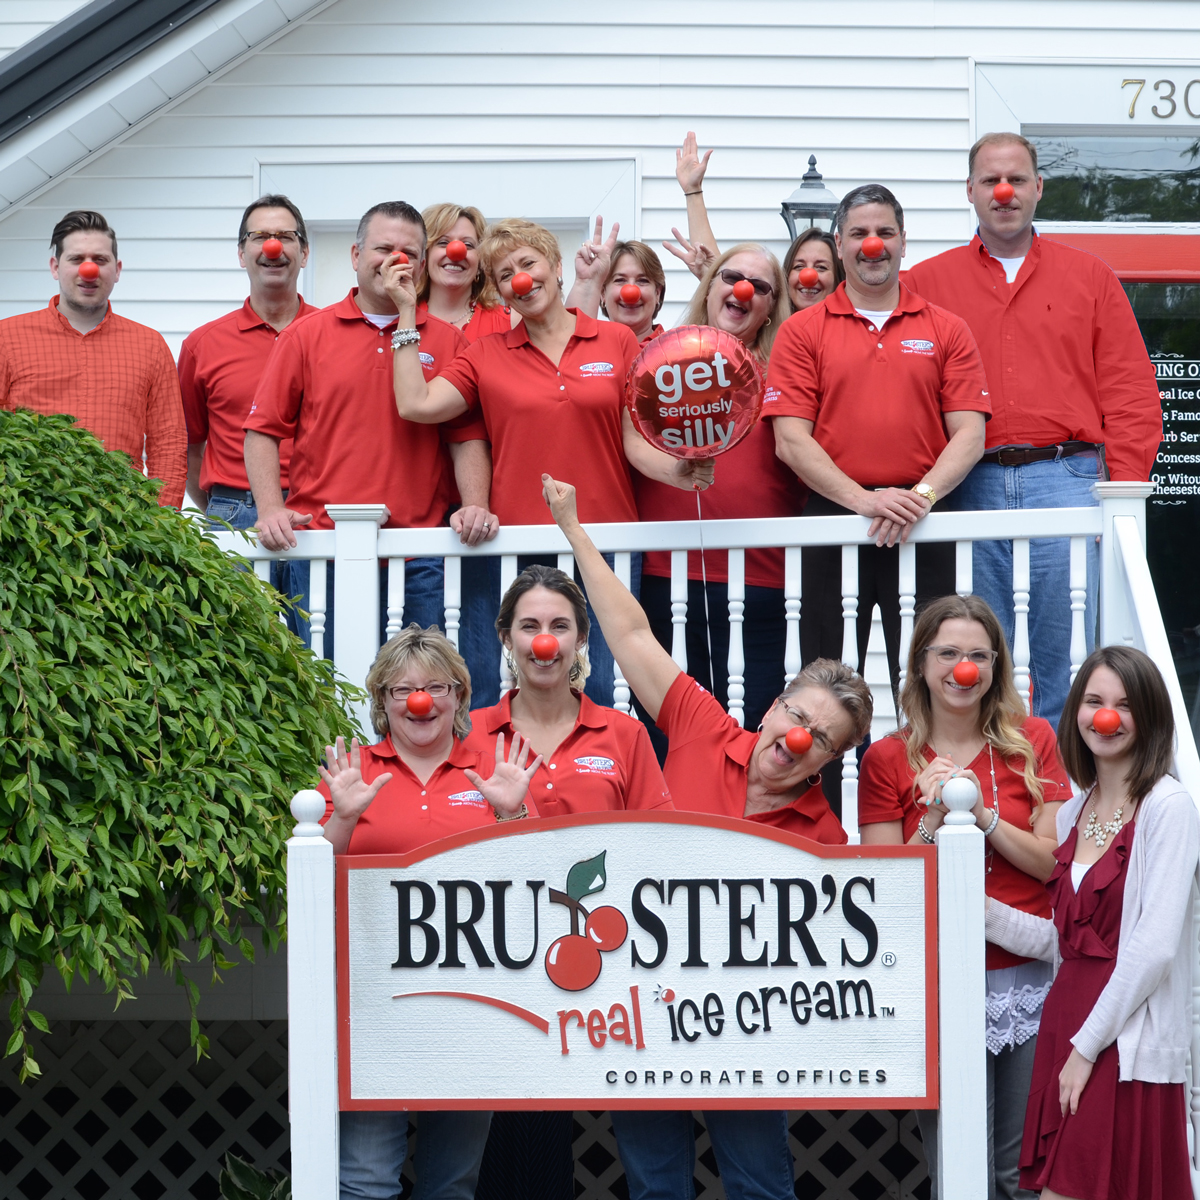 Bruster's Corporate Team